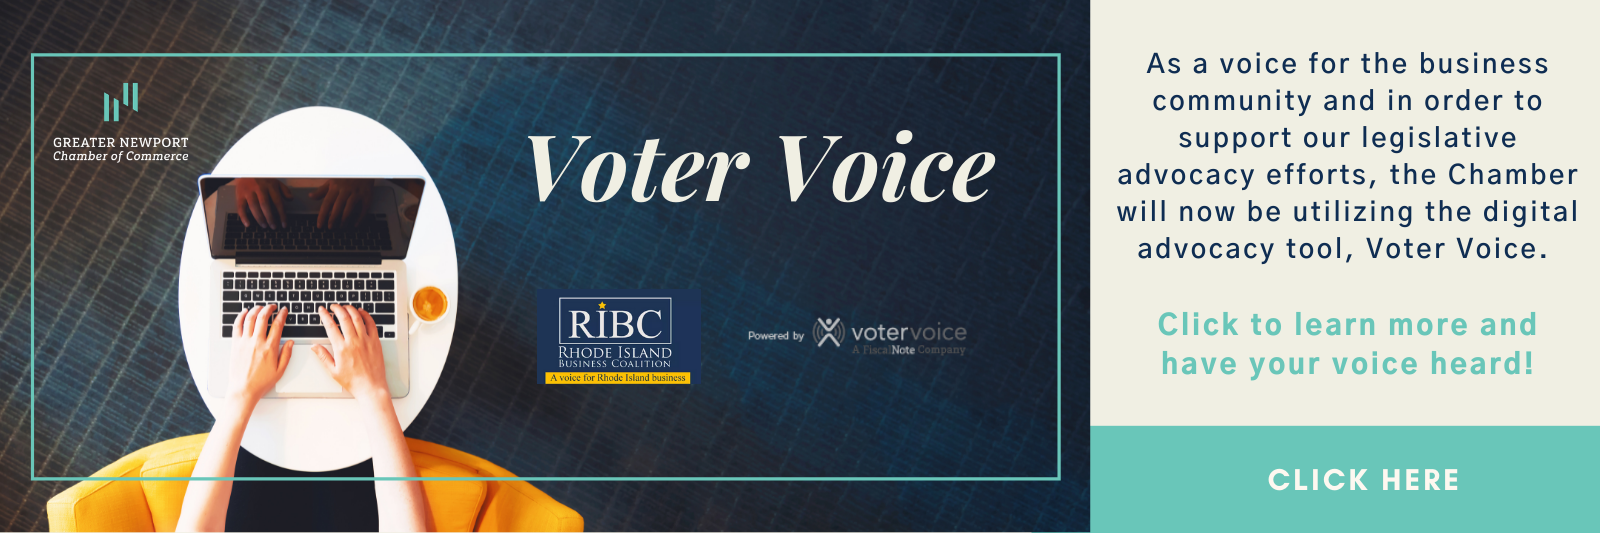 Voter-Voice-homepage.png